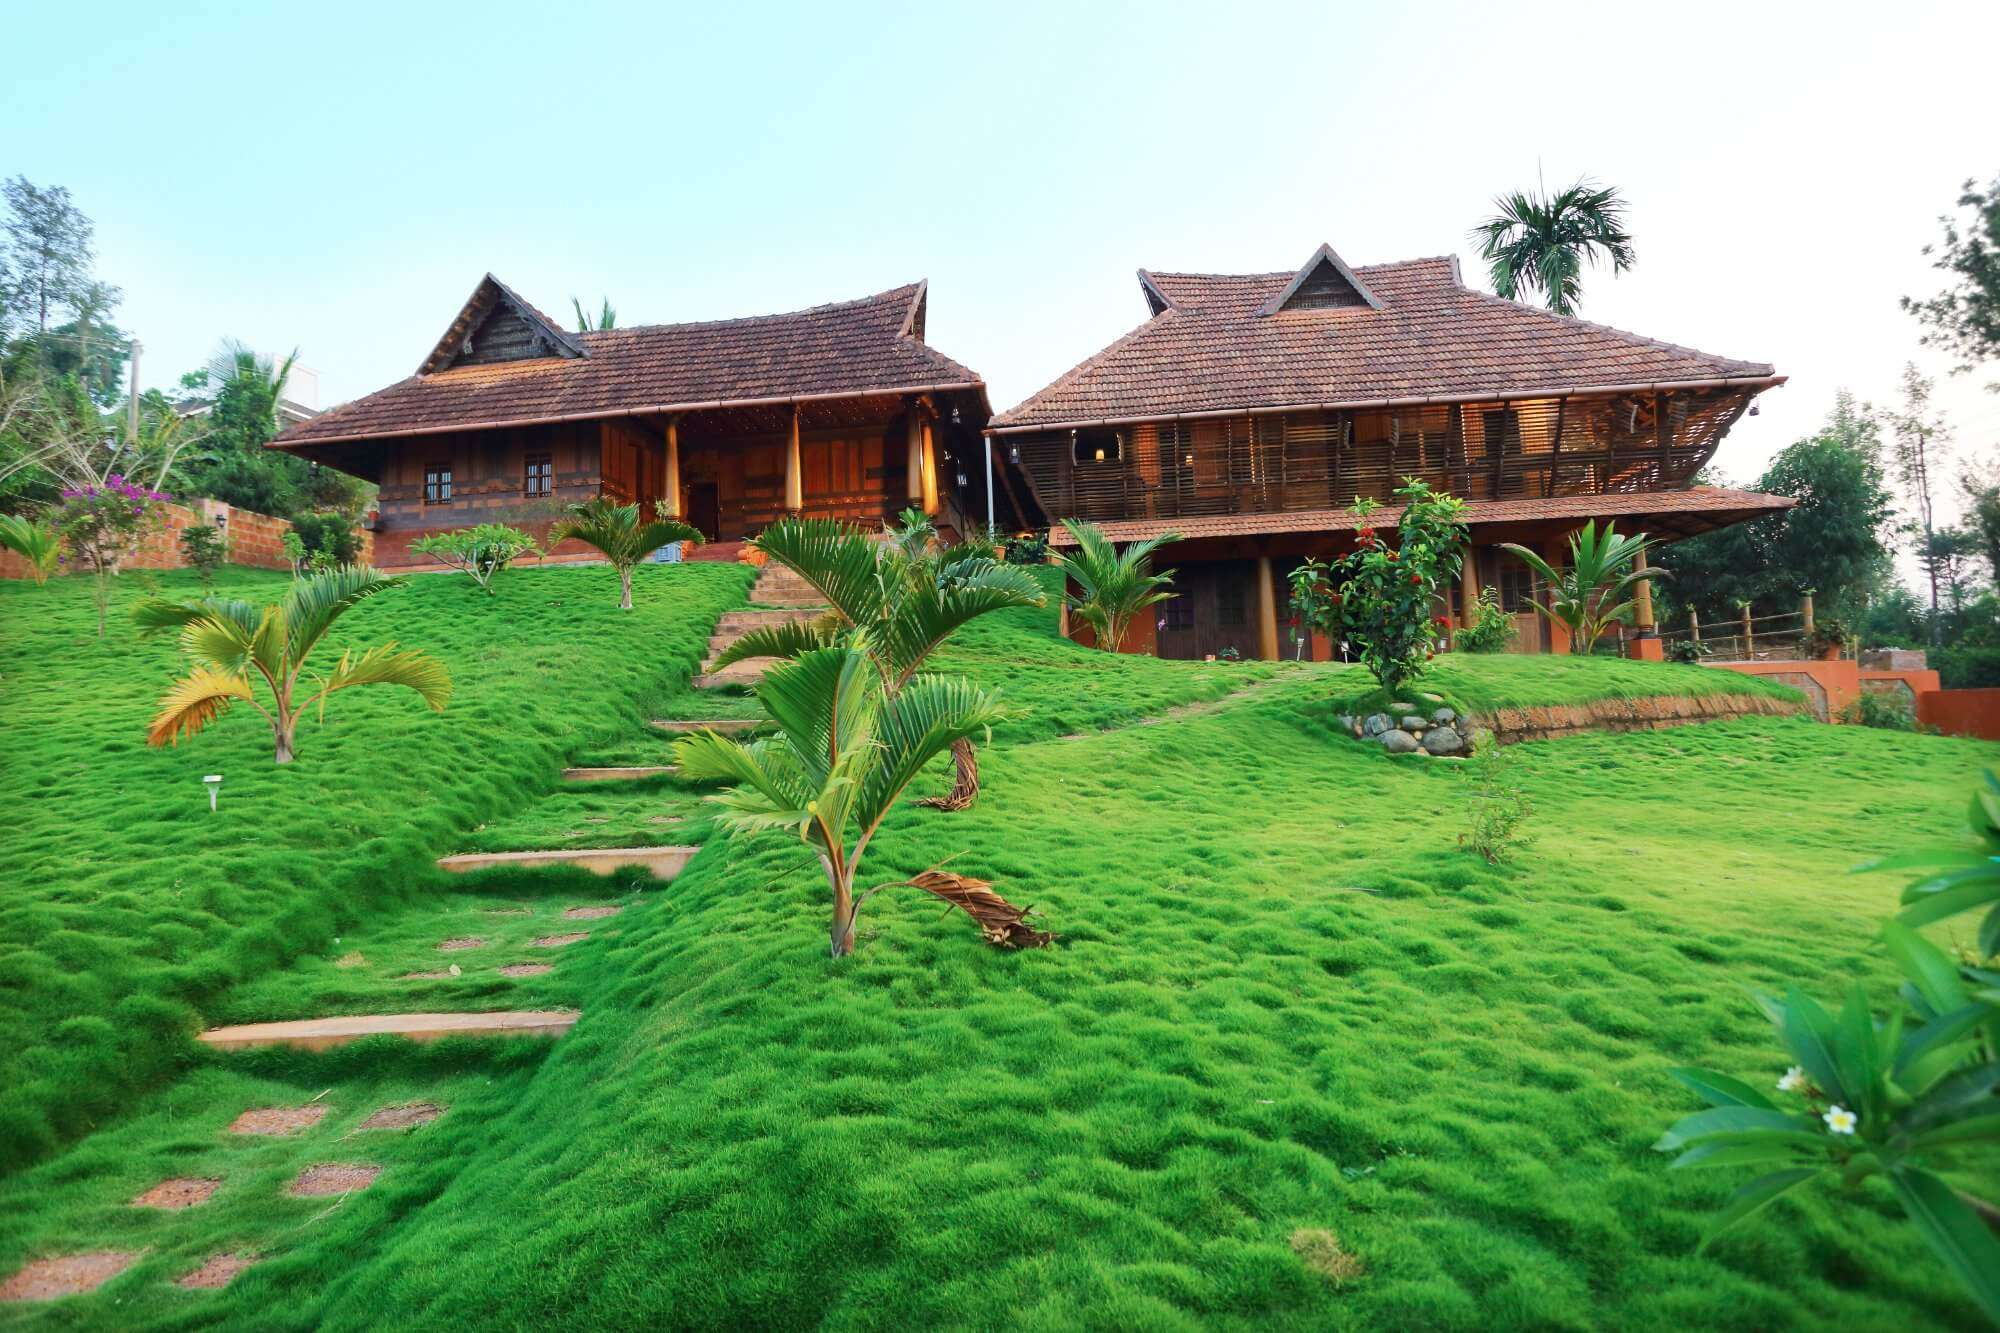 Luxury suites of Thejas Resort surrounded by lush greenery